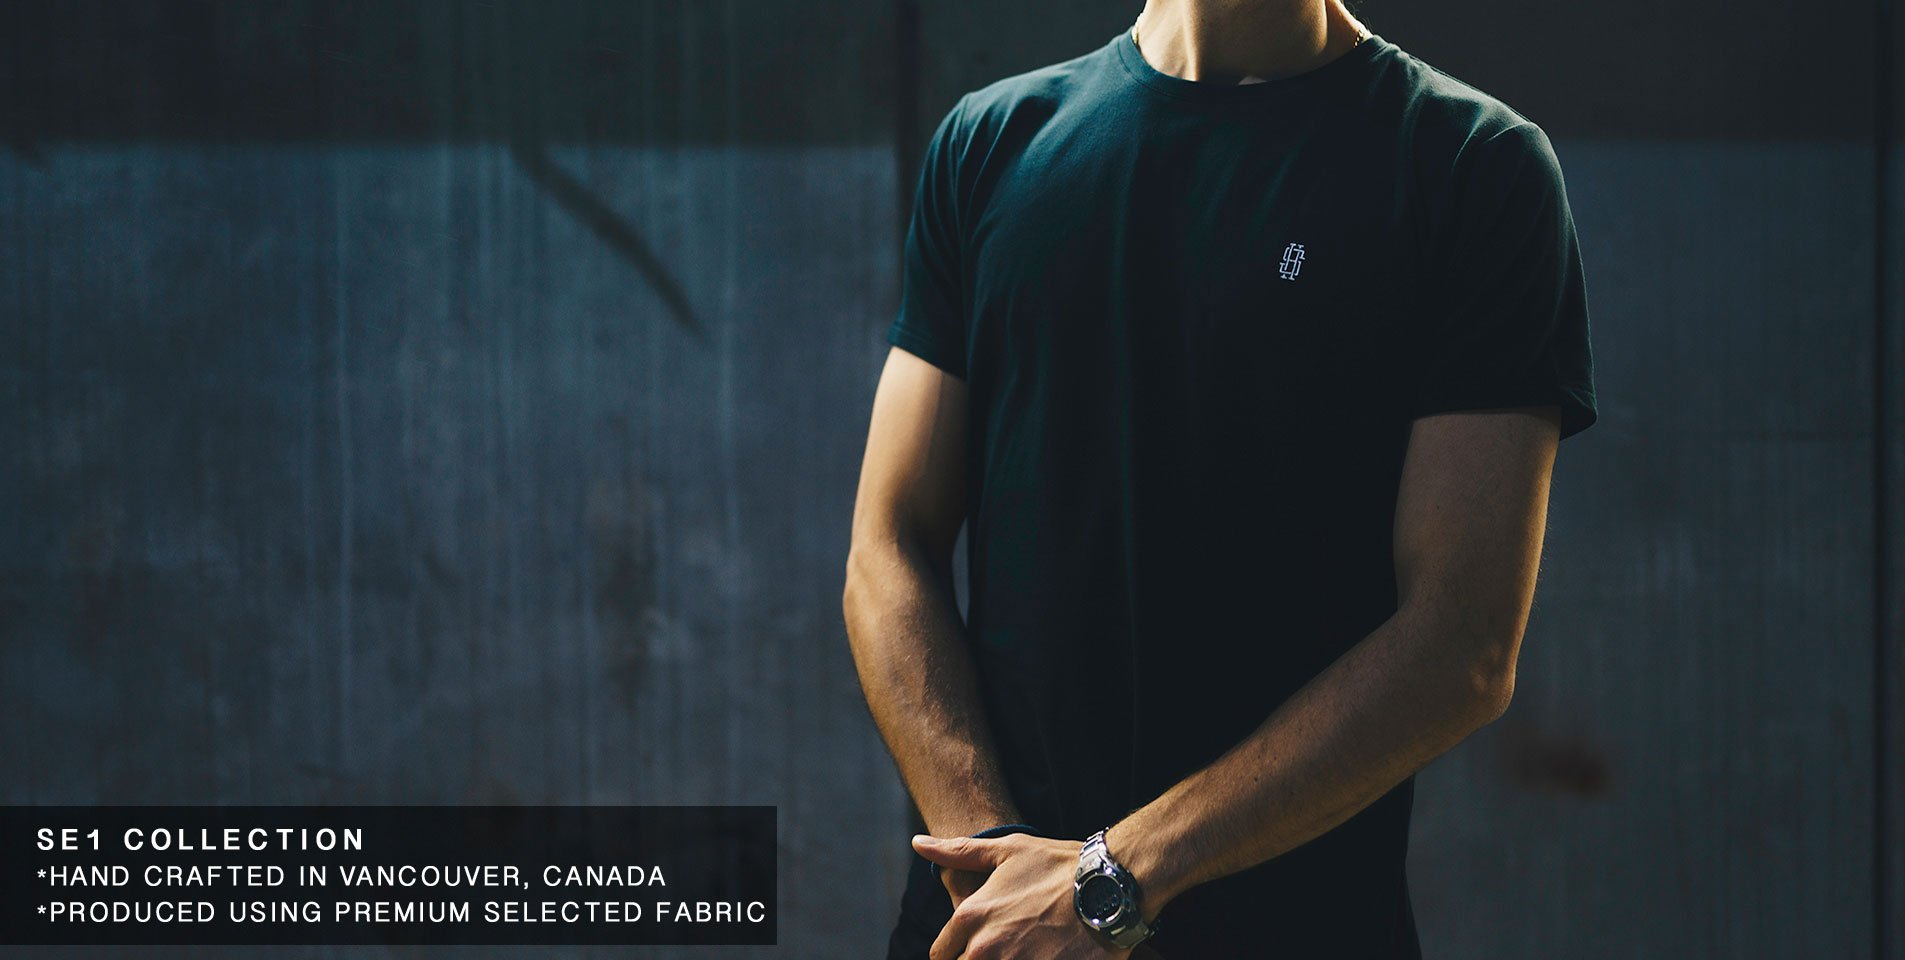 Self Hired - Premium streetwear collection hand crafted in Vancouver